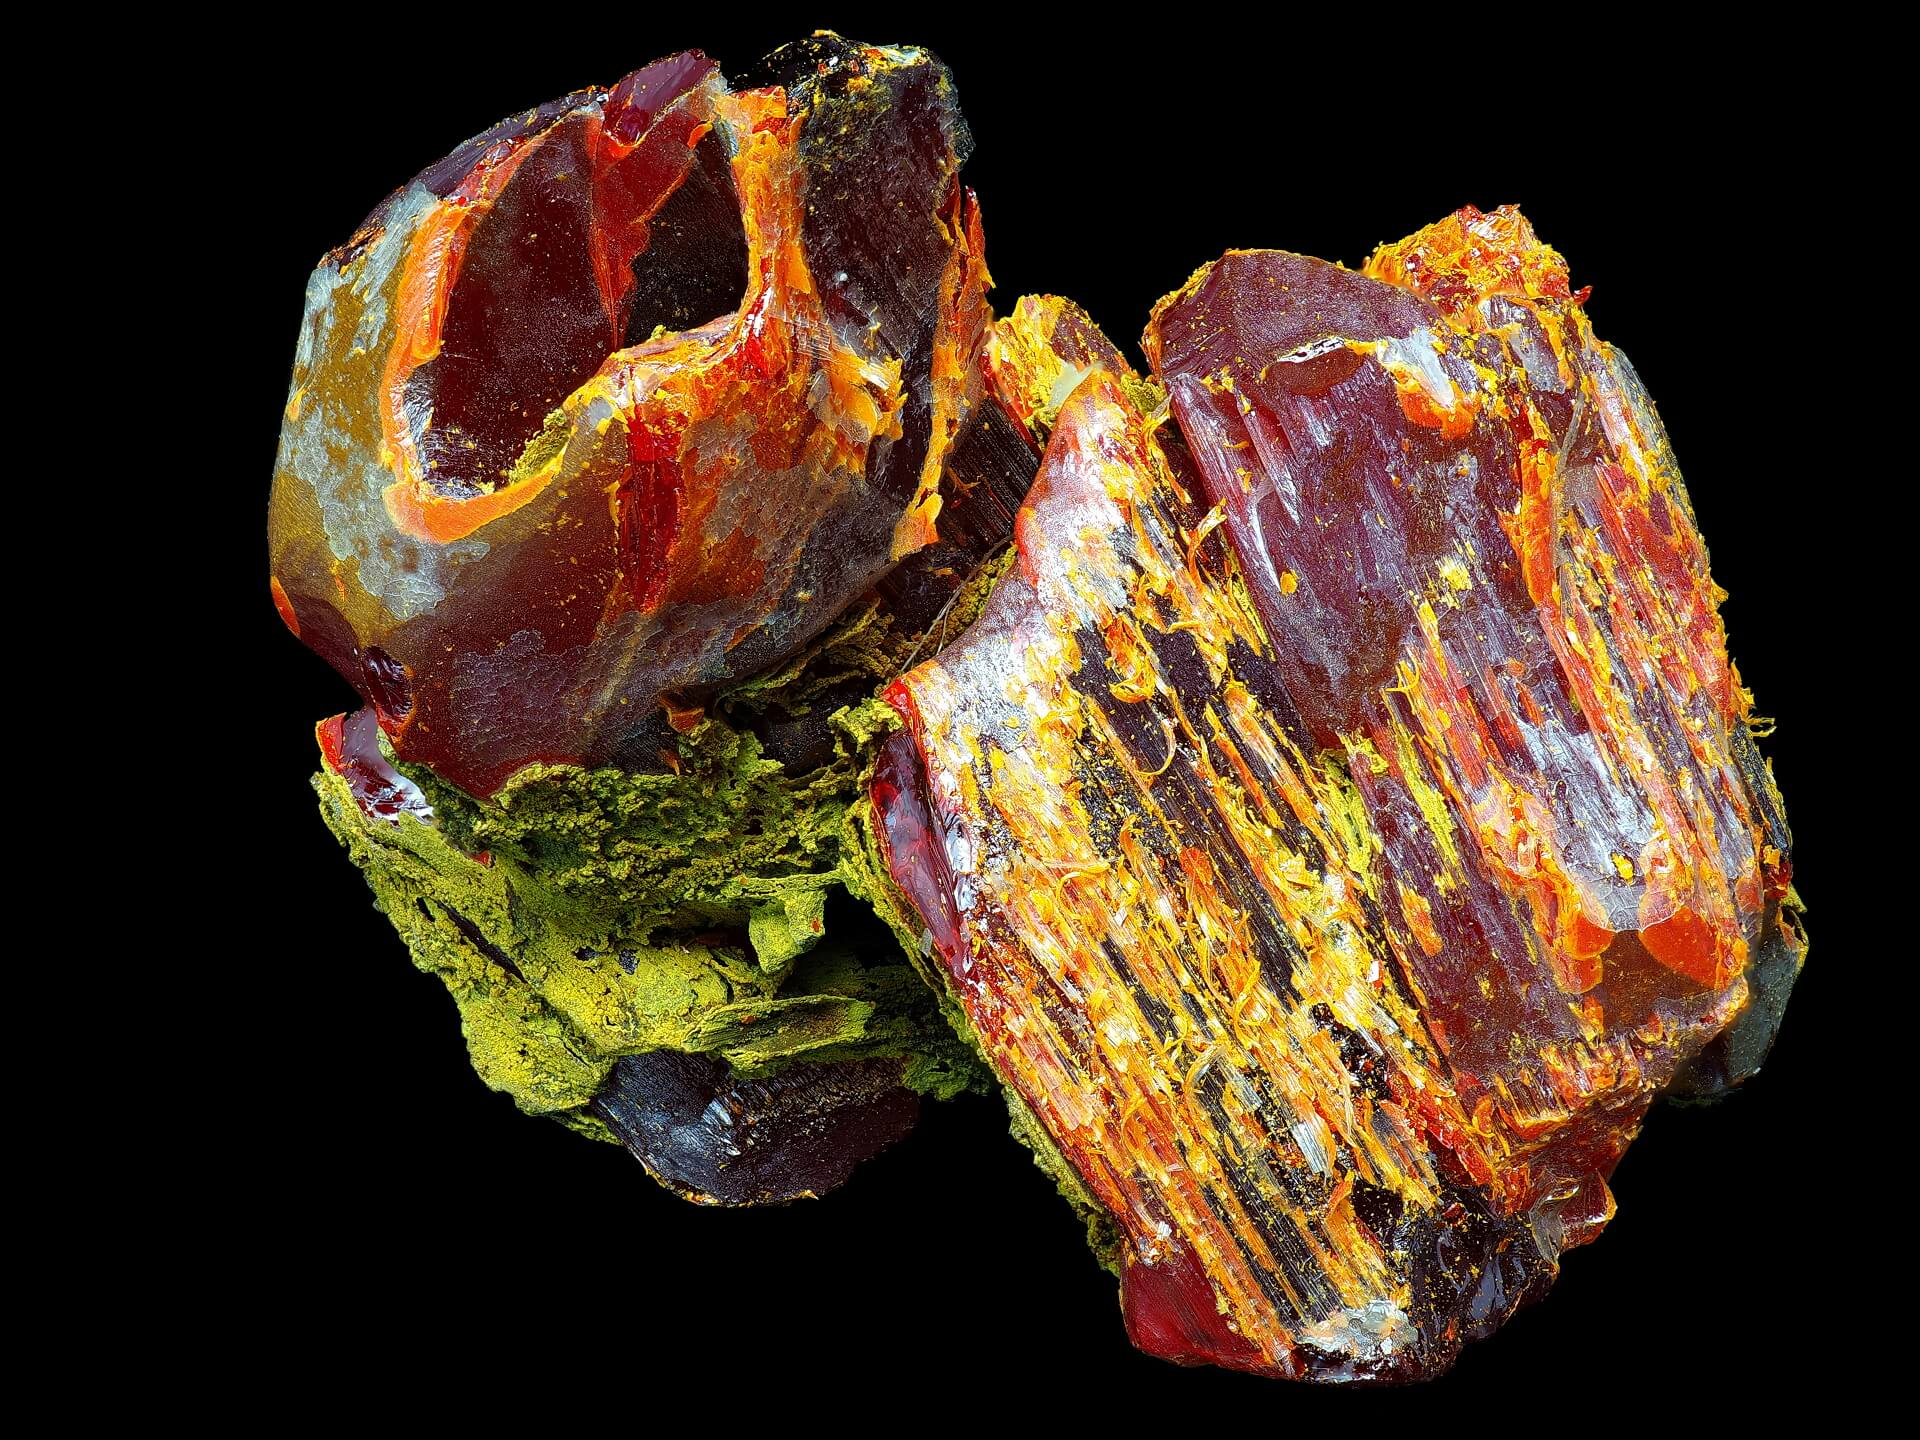 A fascinating formation of a few rich red Realgar crystals with partial green Anorpiment coating, and an as-yet-unidentified yellow/orange mineral.